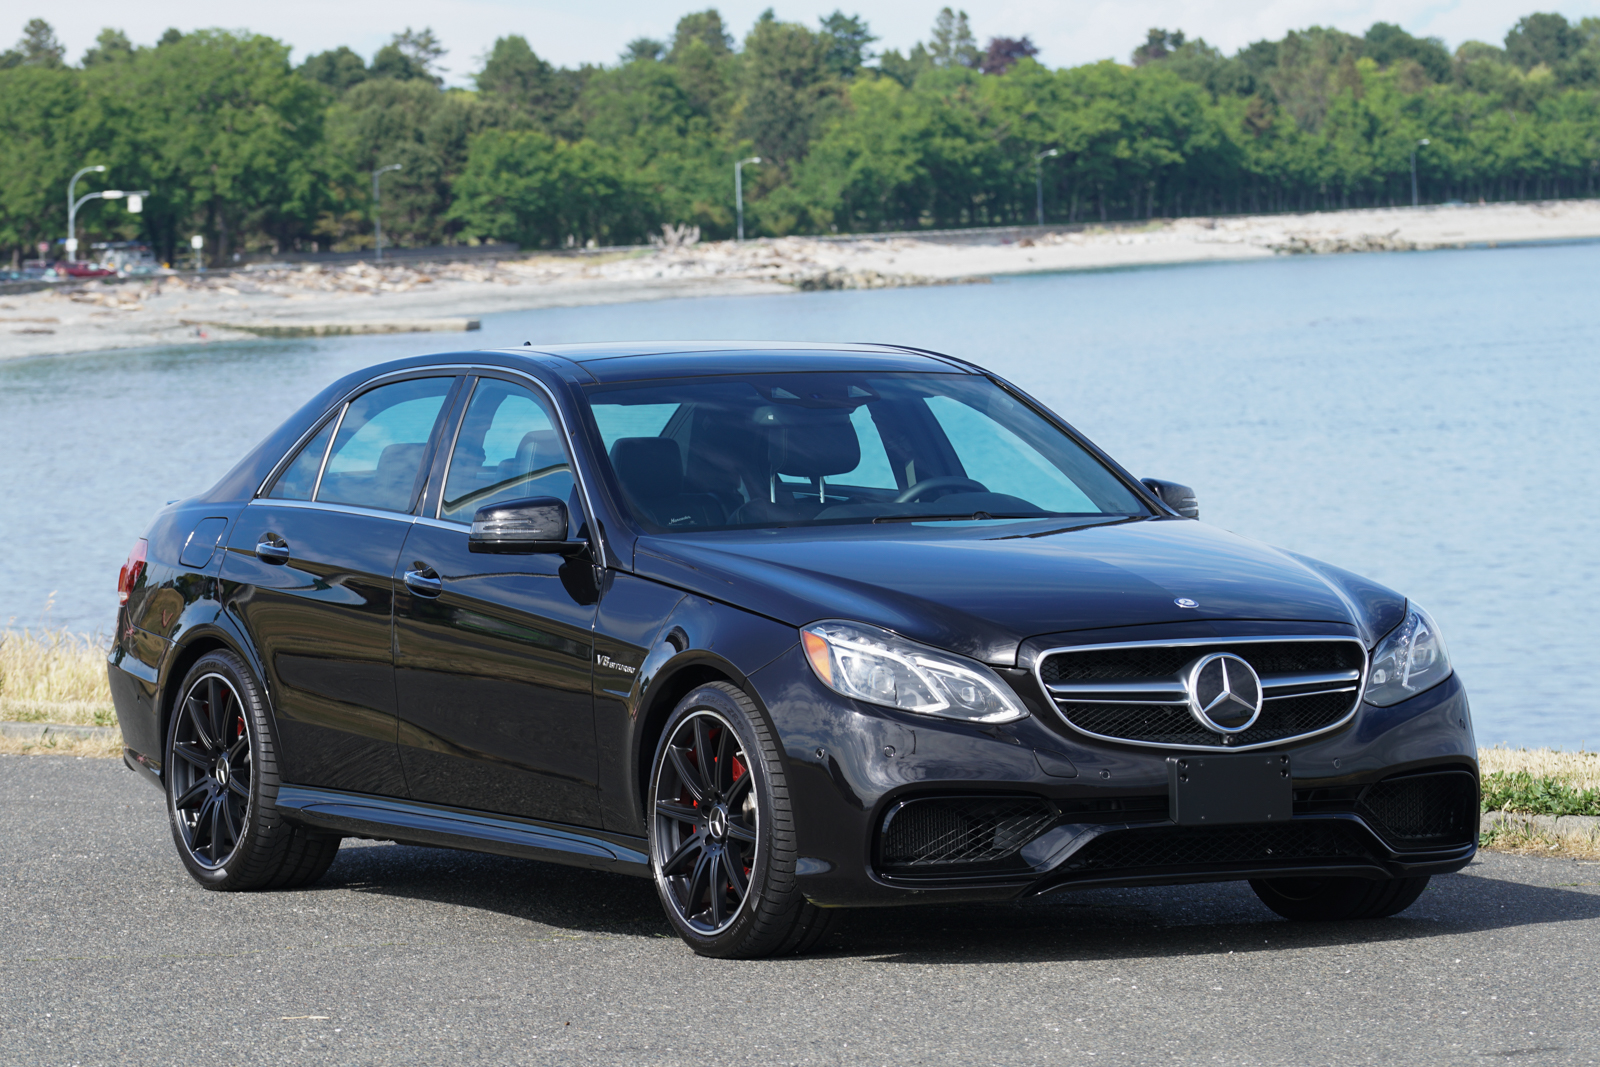 2014 Mercedes Benz E63 S Amg For Sale Silver Arrow Cars Ltd